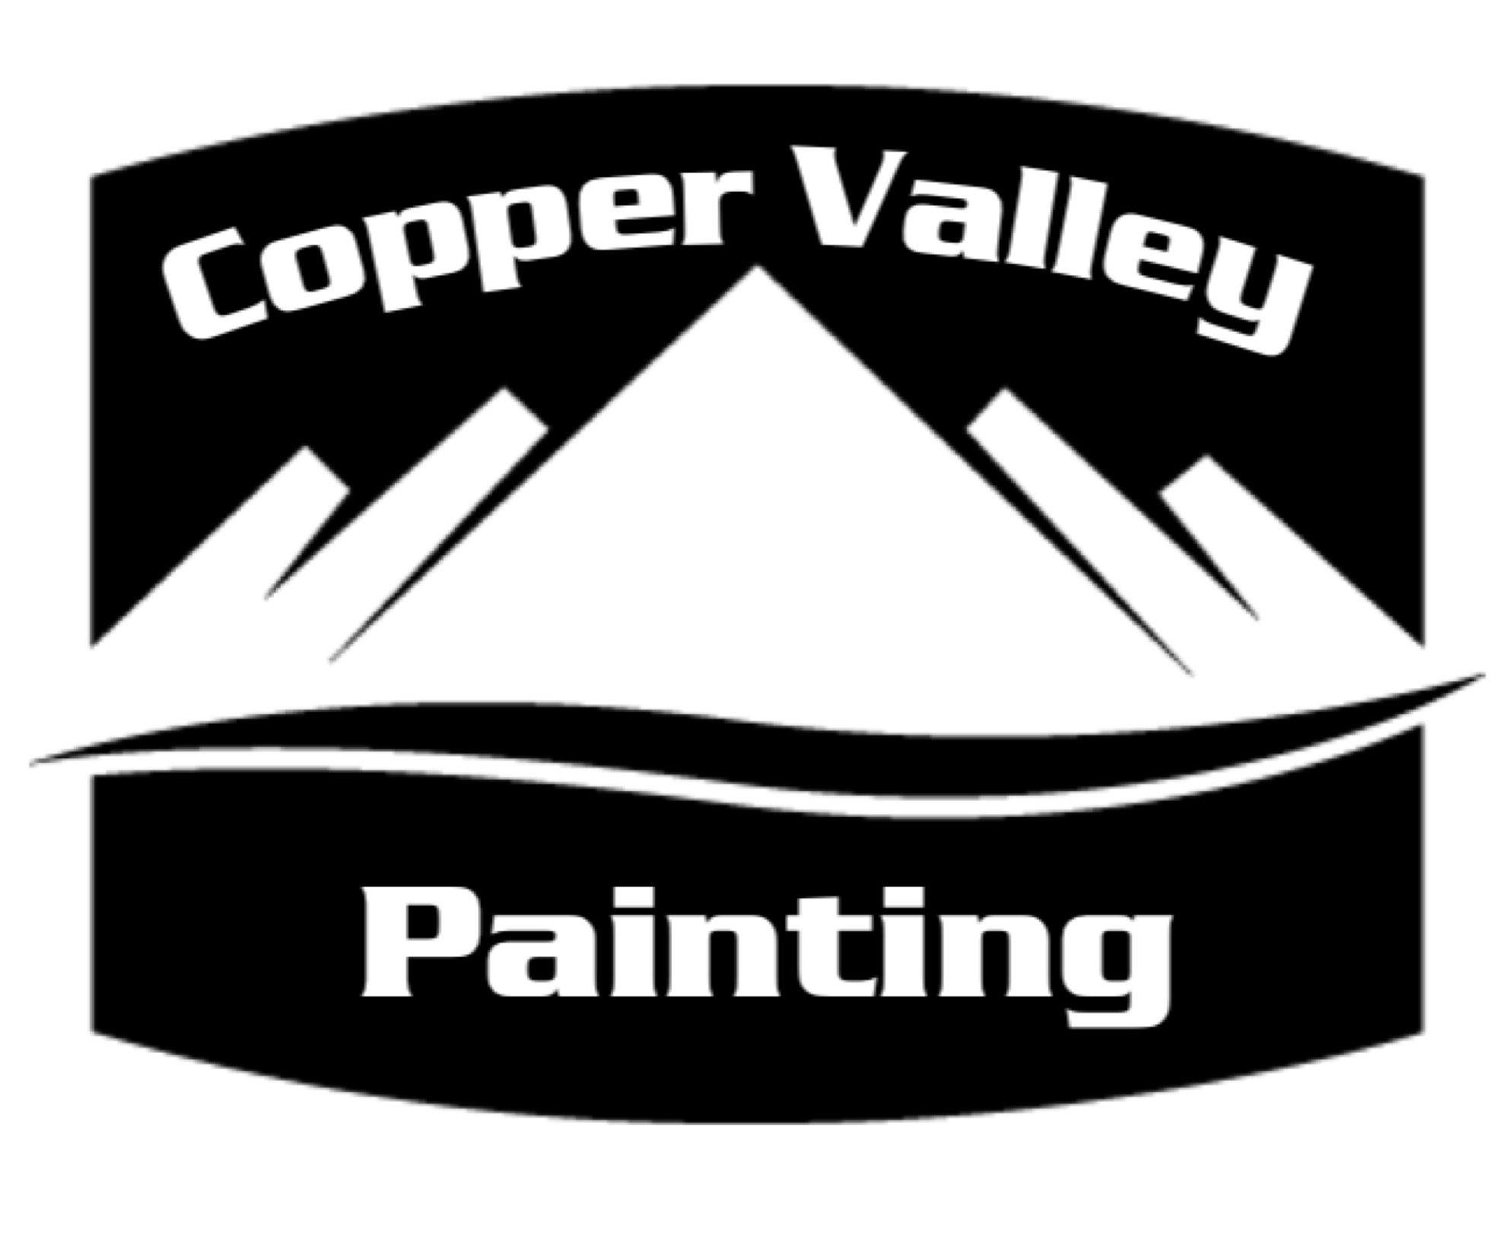 Copper Valley Painting